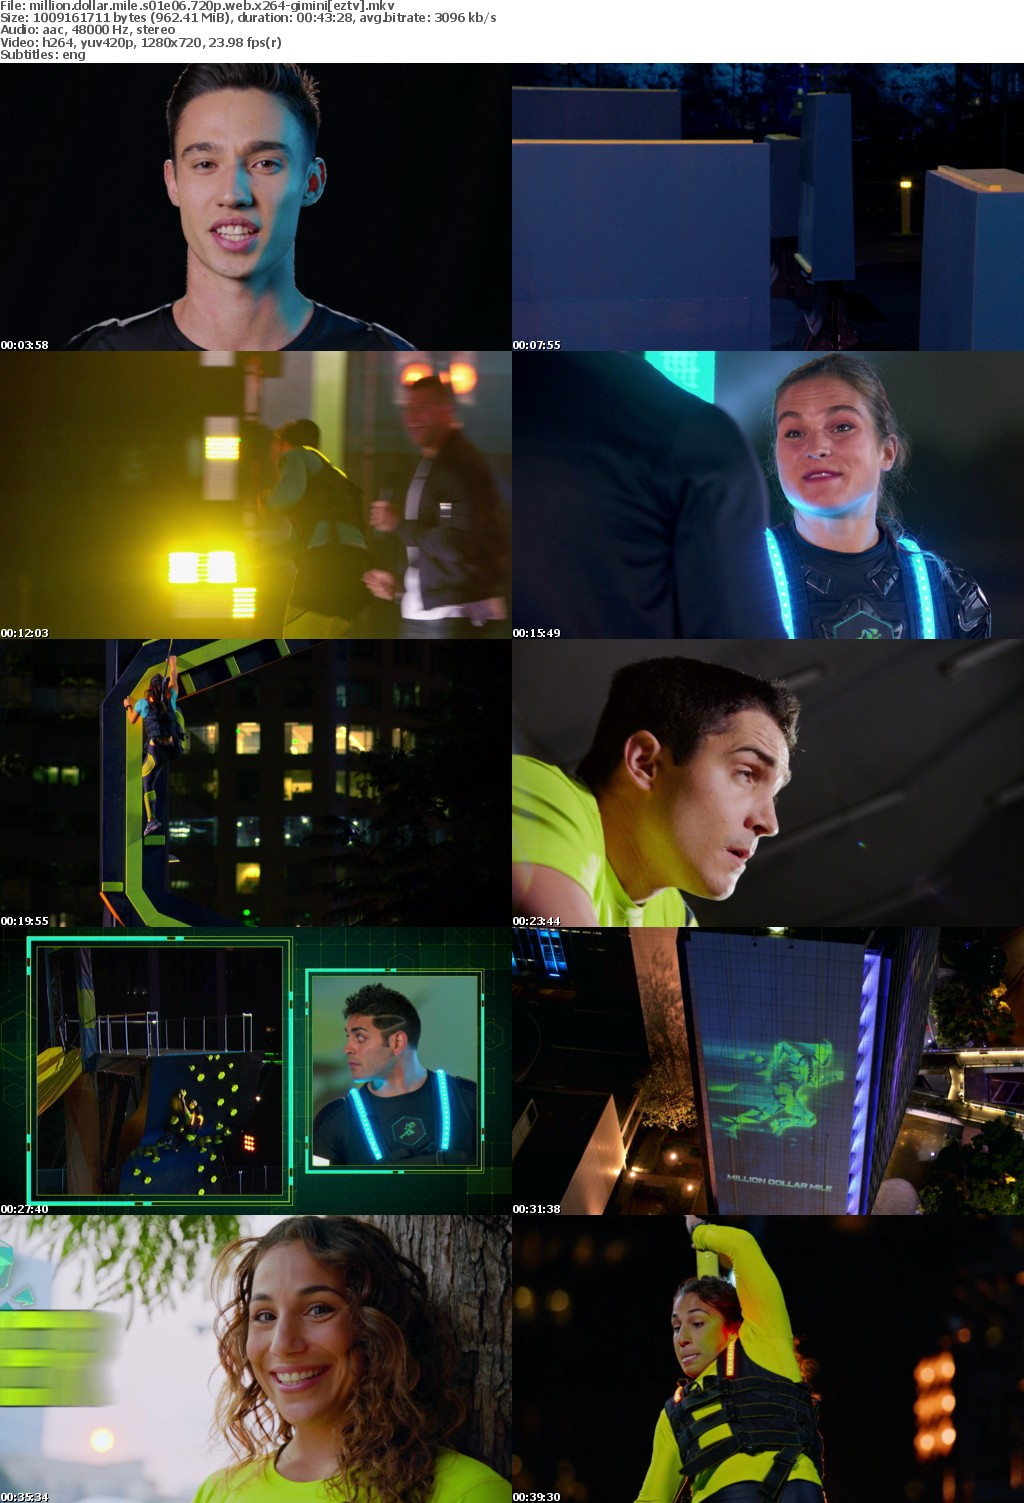 Million Dollar Mile S01E06 720p WEB x264 GIMINI